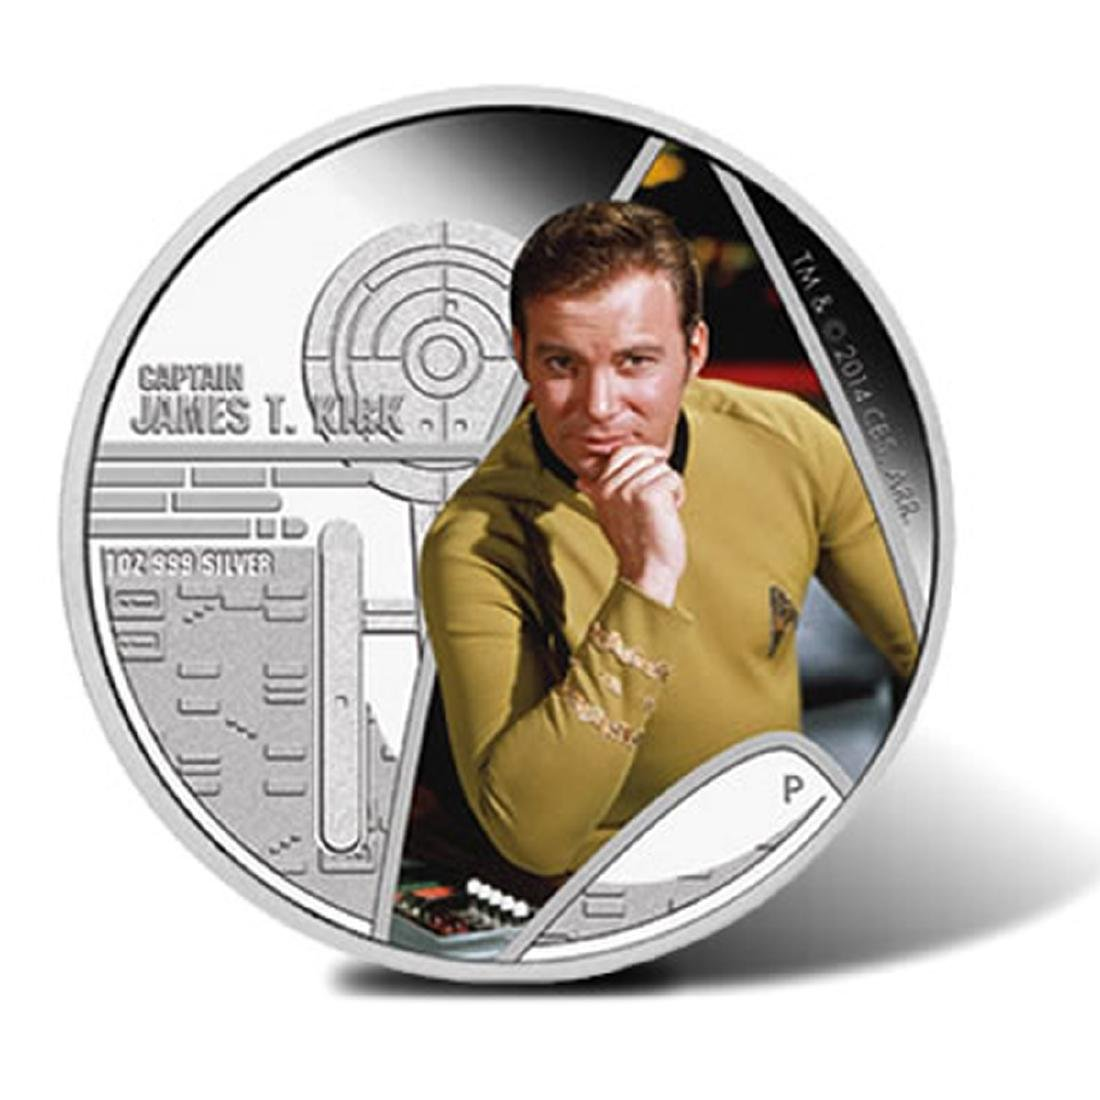 2015 Tuvalu $1 Star Trek: The Original Series Captain